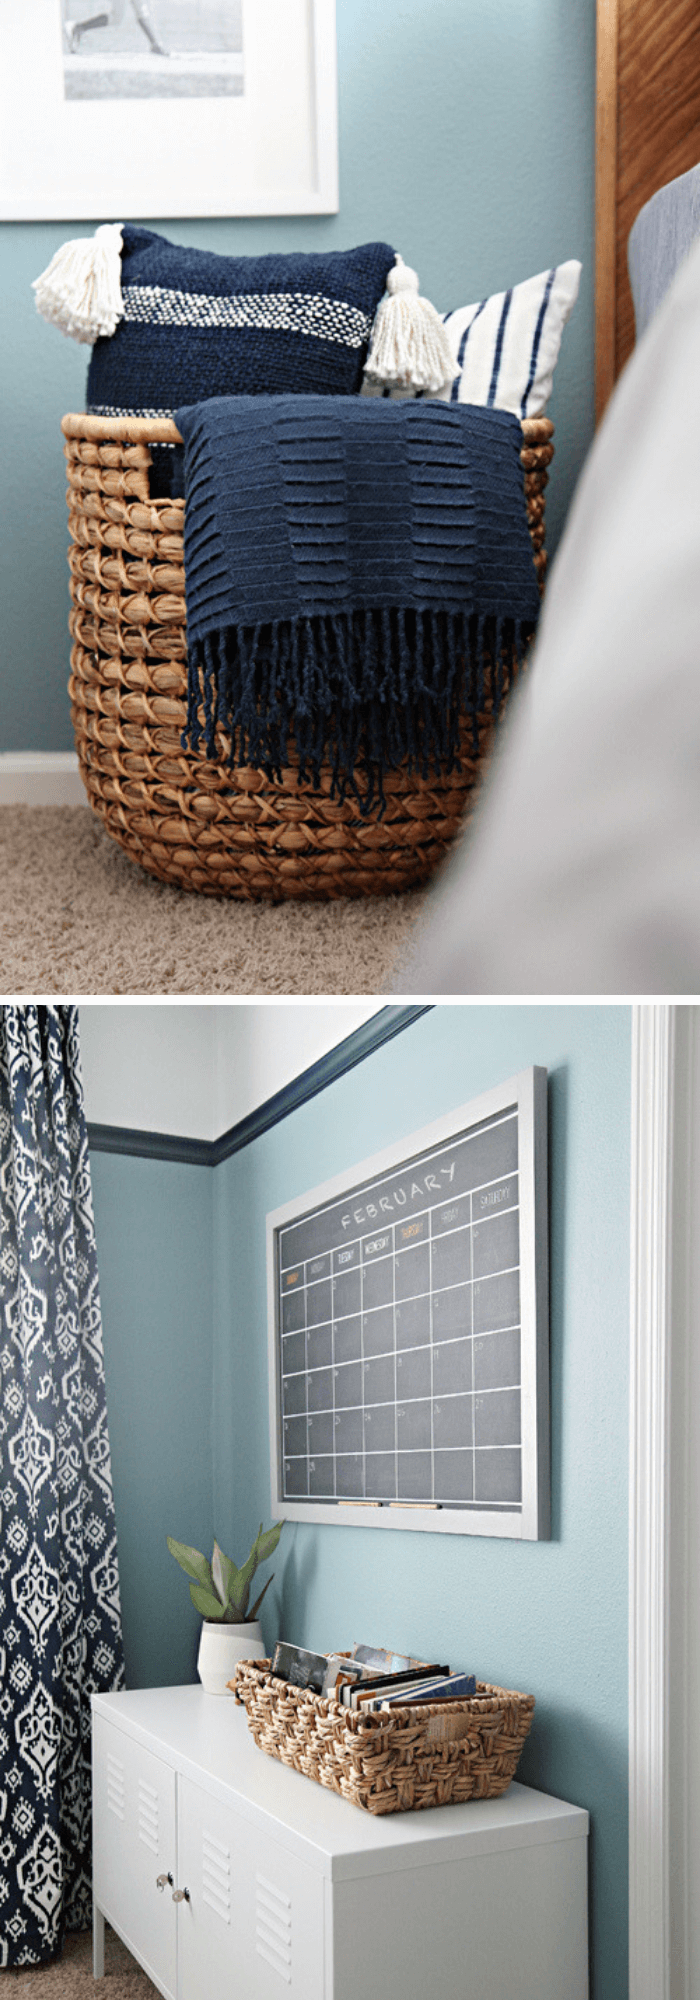 best bedroom organization ideas Over-sized basket for pillows